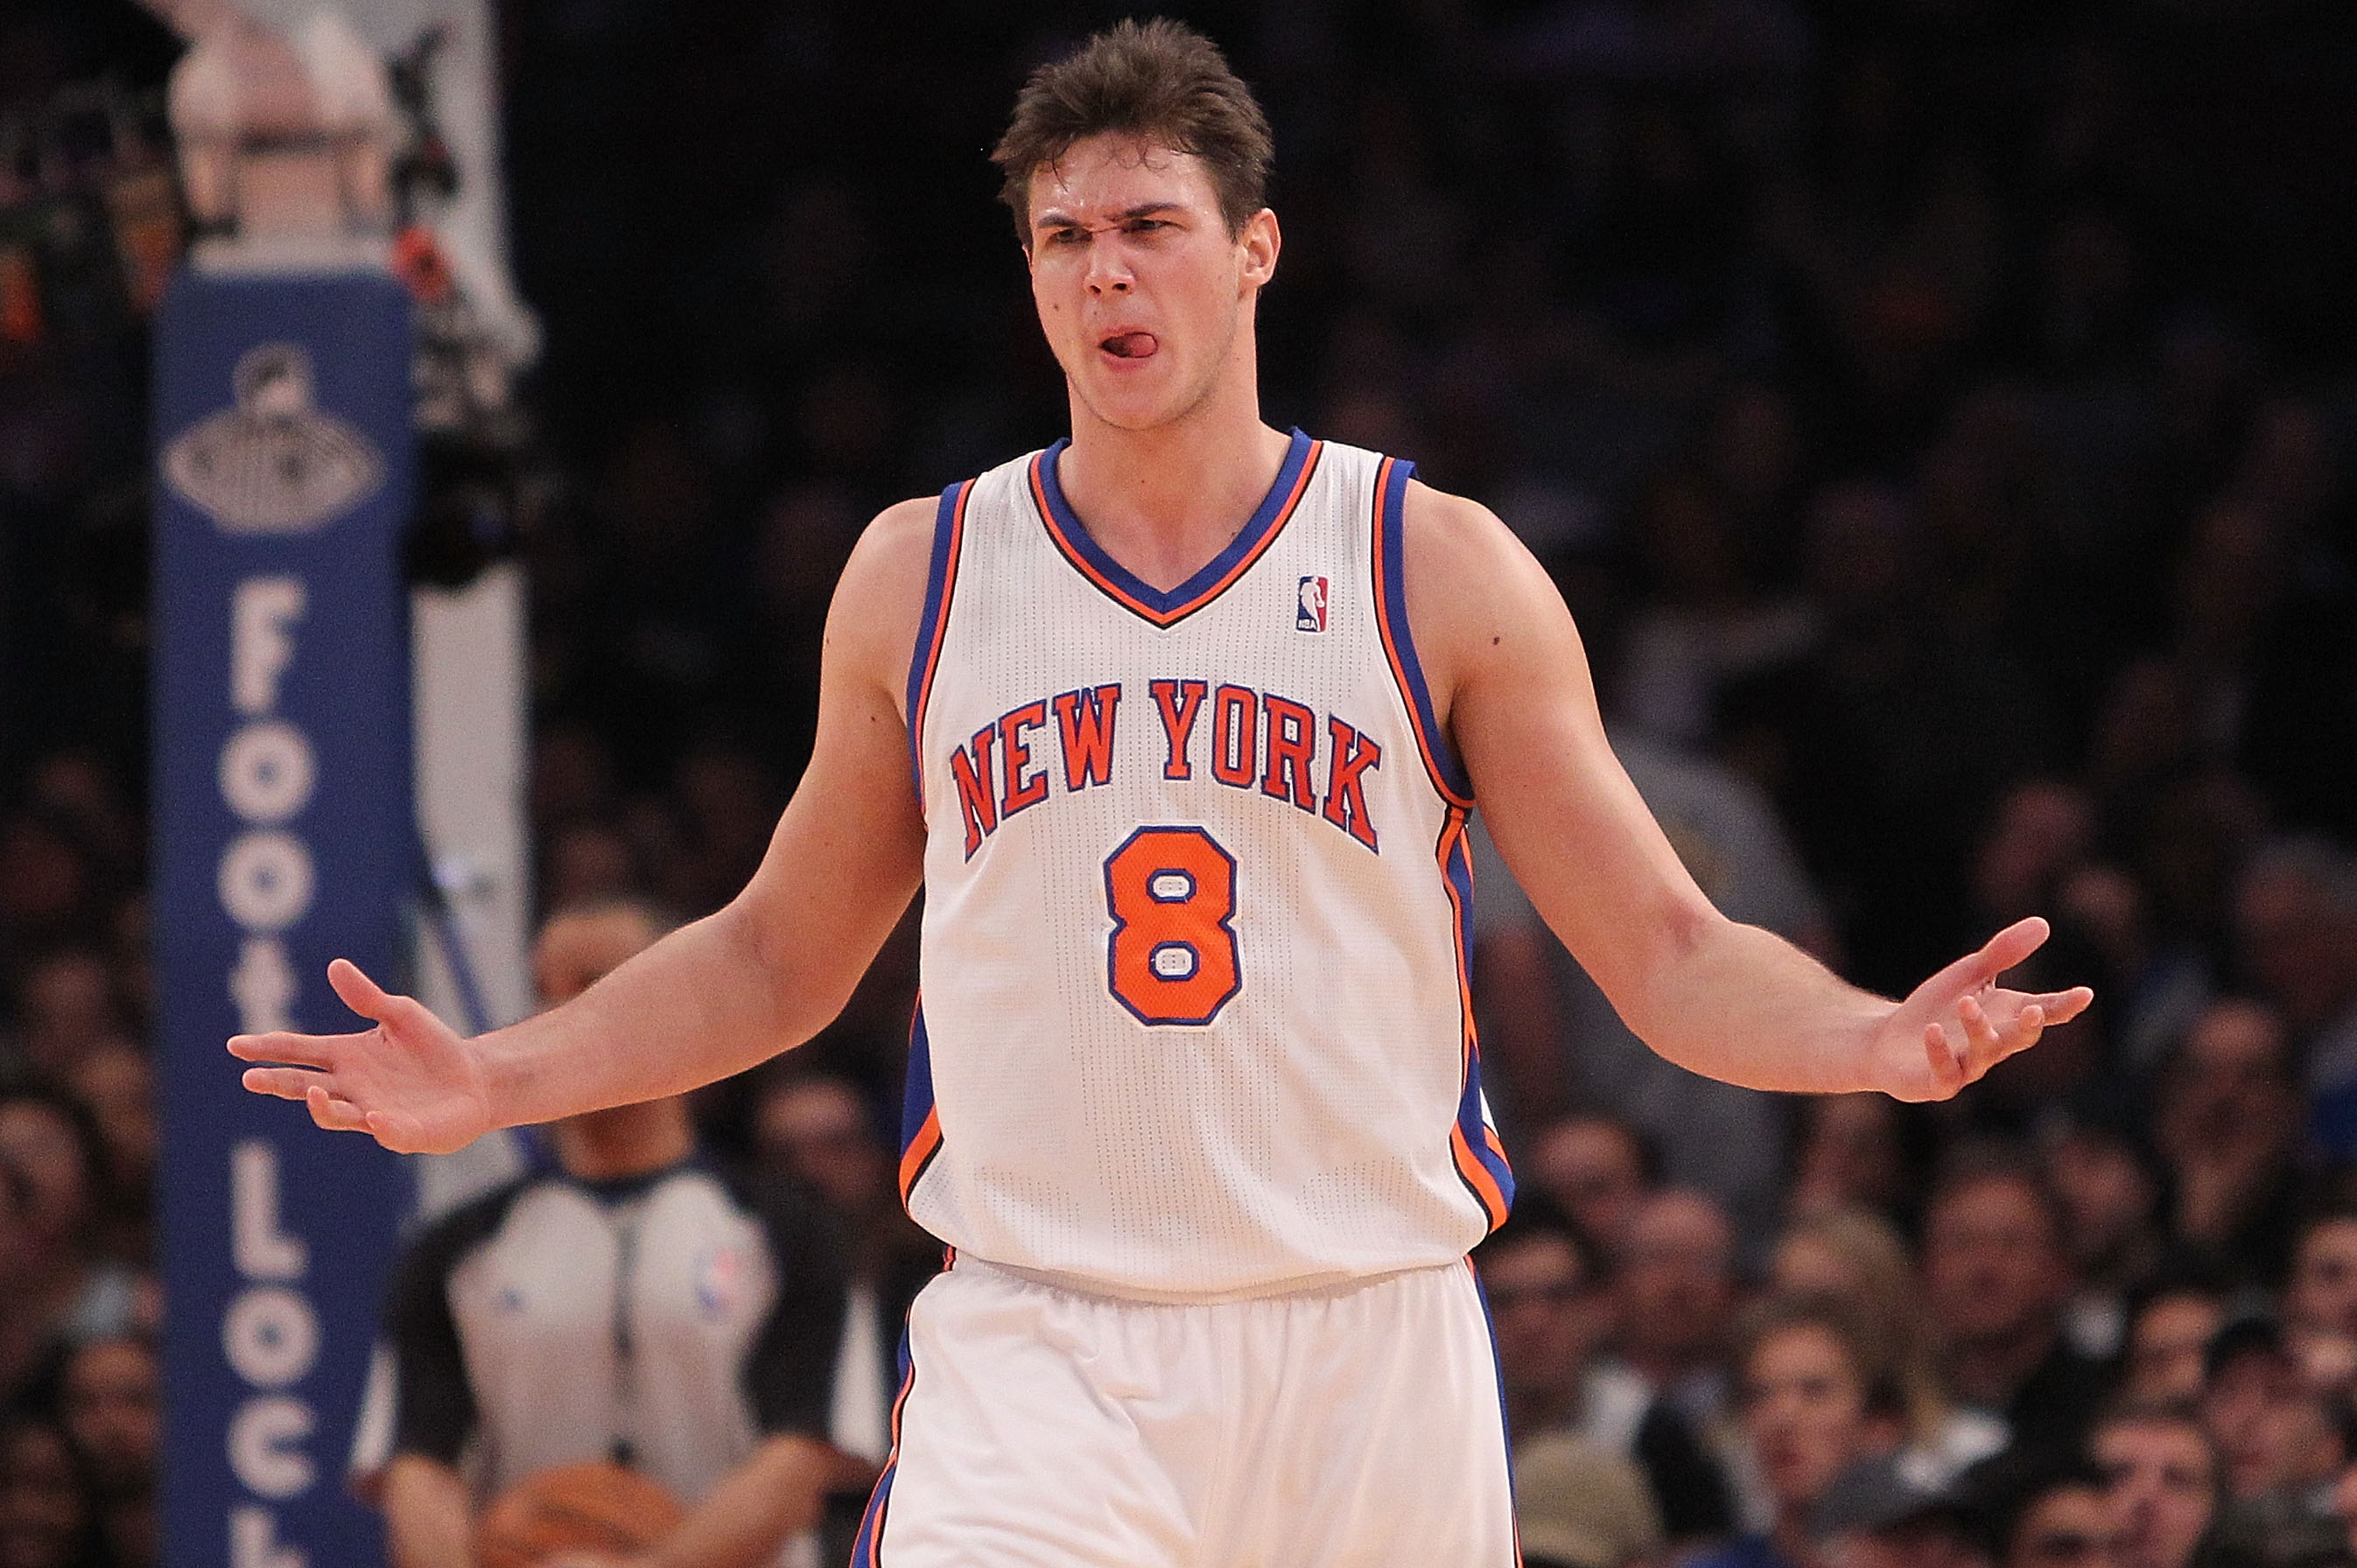 NEW YORK, NY - FEBRUARY 02:  Danilo Gallinari #8 of the New York Knicks questions a call against the Dallas Mavericks at Madison Square Garden on February 2, 2011 in New York City. NOTE TO USER: User expressly acknowledges and agrees that, by downloading